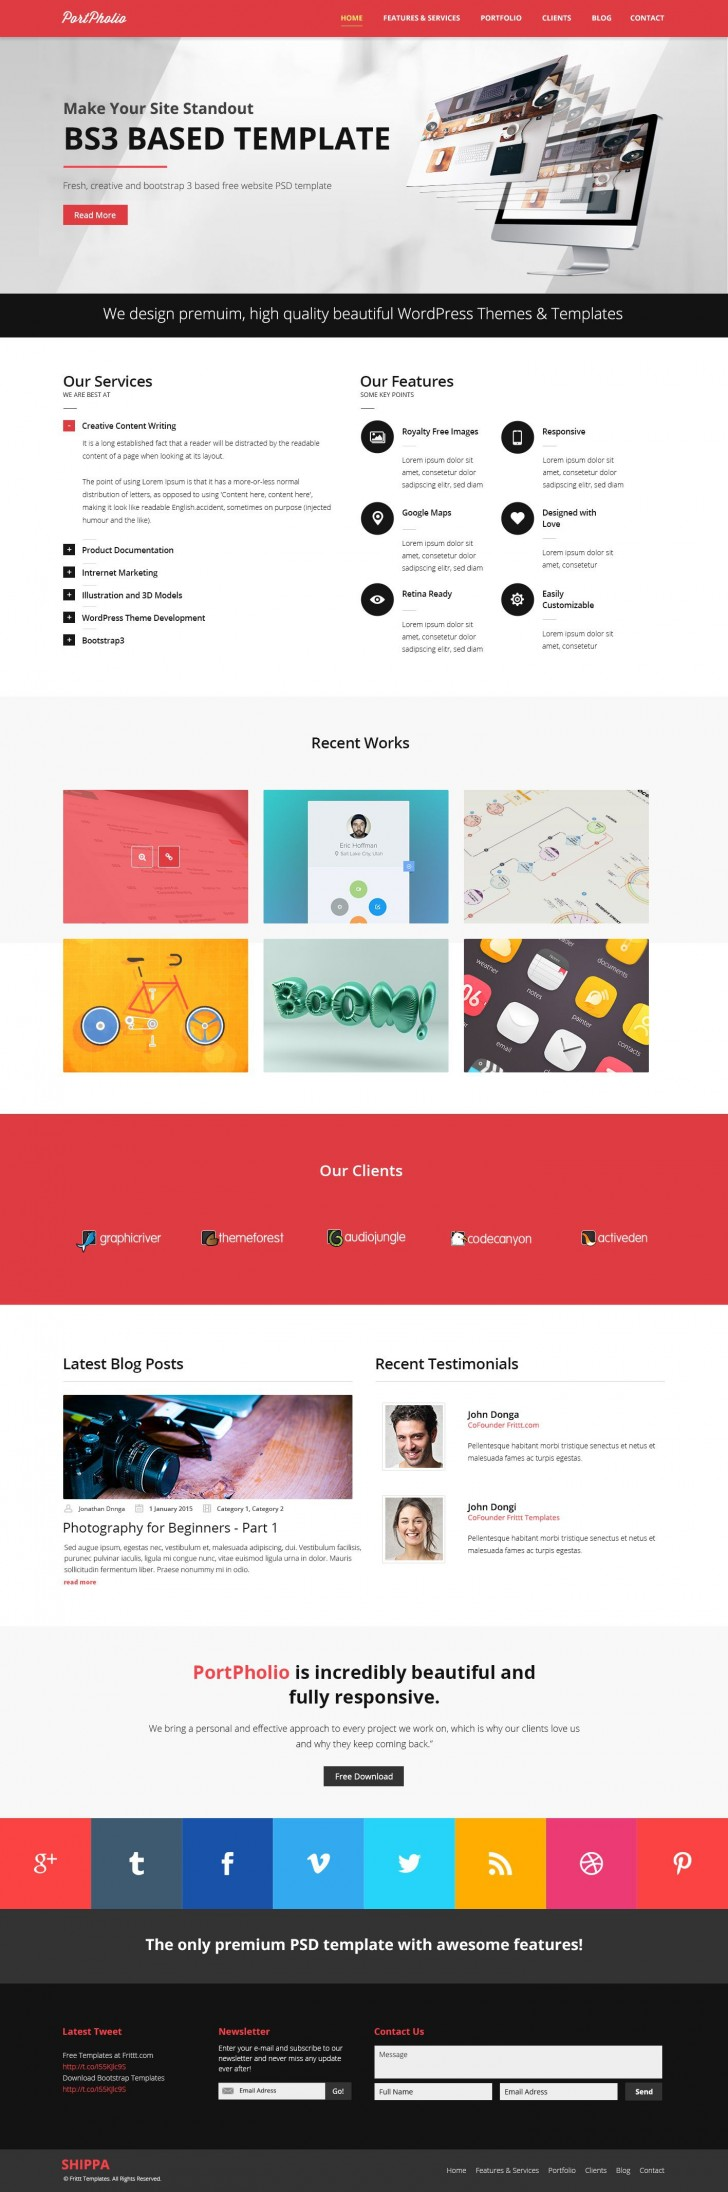 003 Rare One Page Website Template Psd Free Download Sample 728